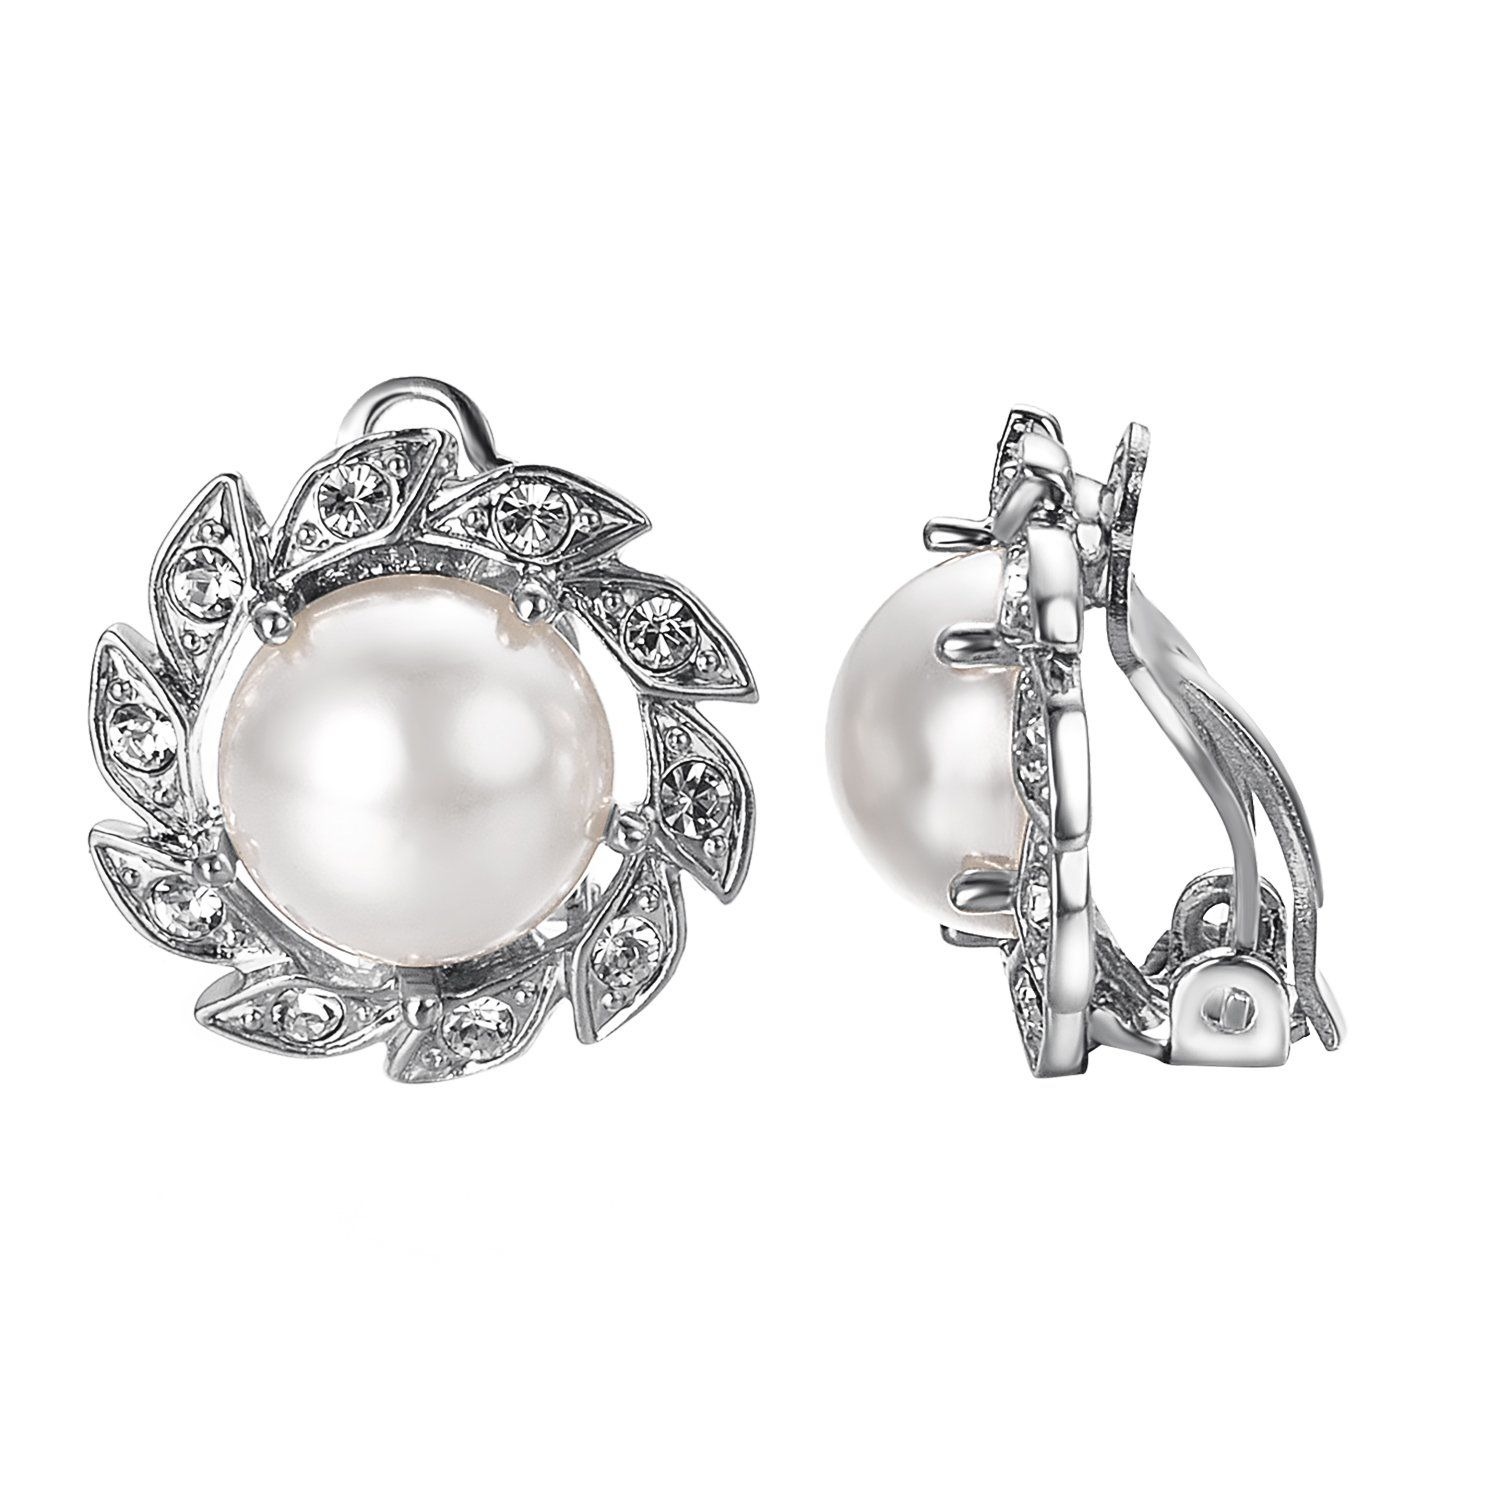 VOGEM Pearl Clip On Earrings For Women 18K White Gold Plated CZ Earrings Charm Brides Jewelry